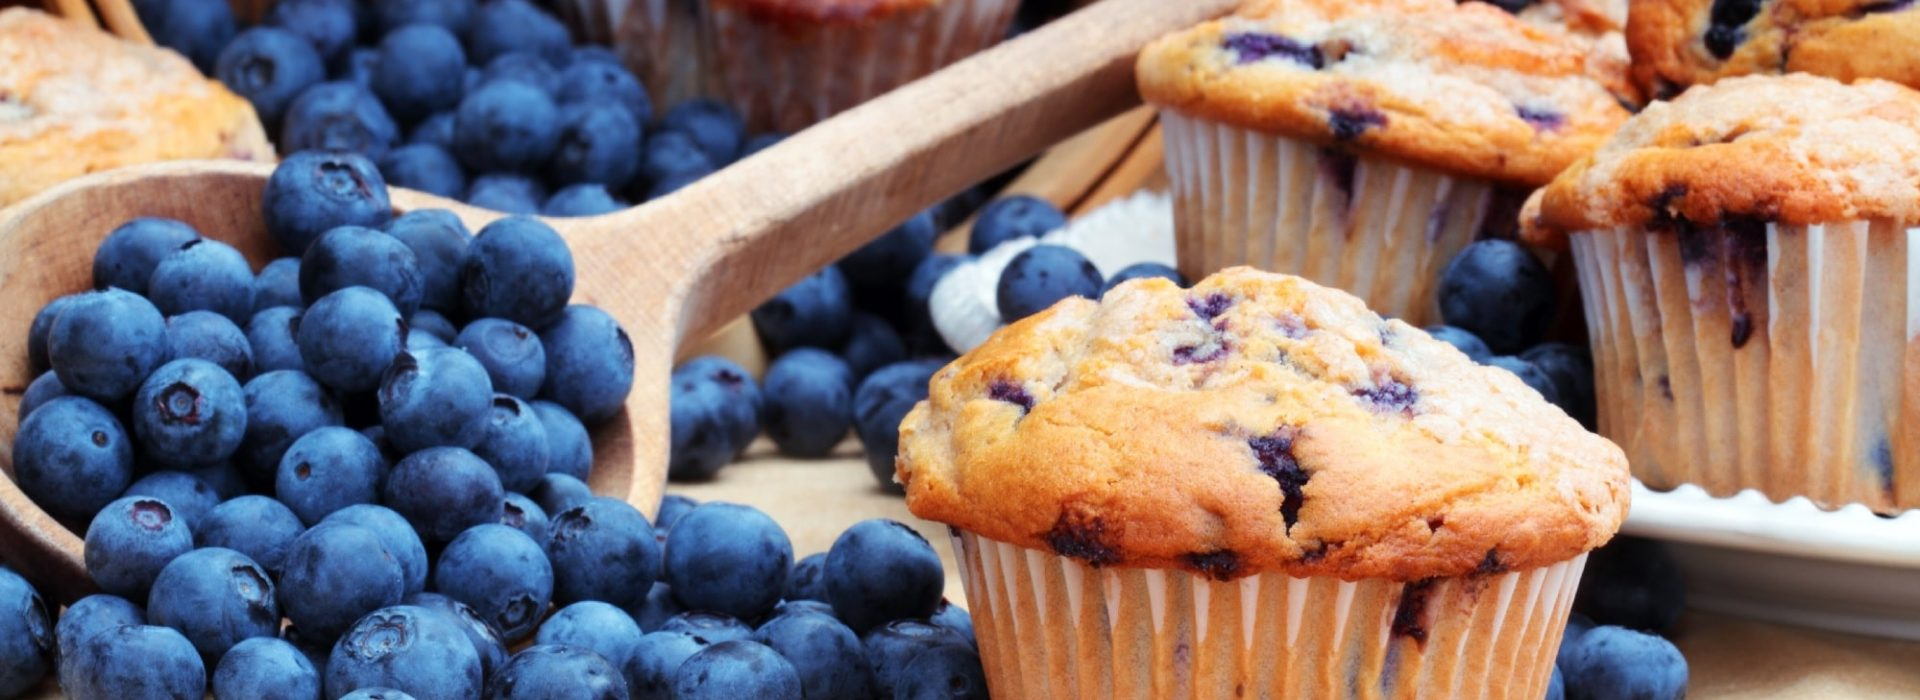 Blueberry Muffin Blog Image